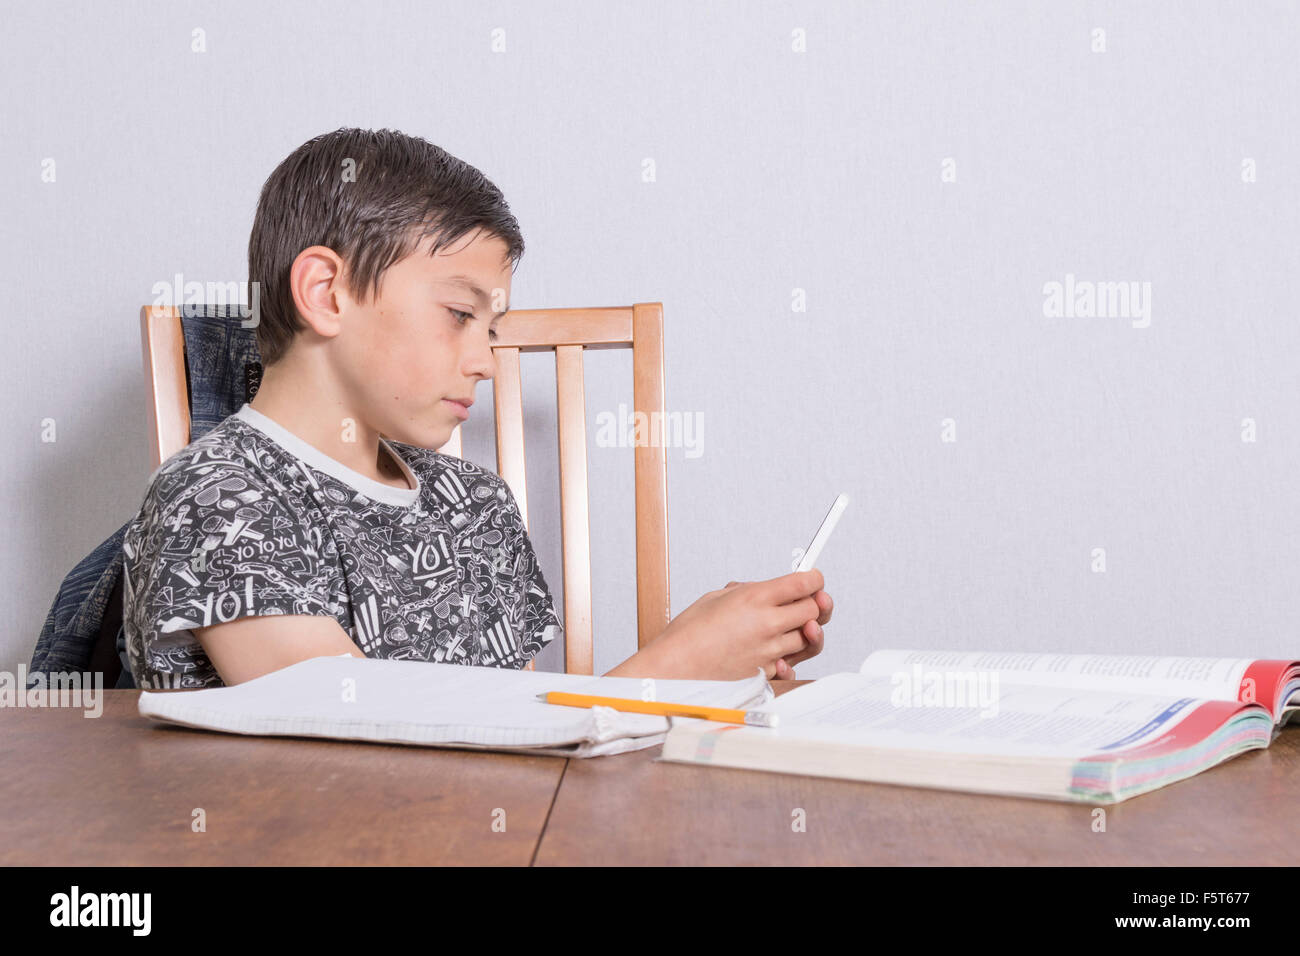 Pre-teen boy distracted by his phone from doing his homework - Stock Image